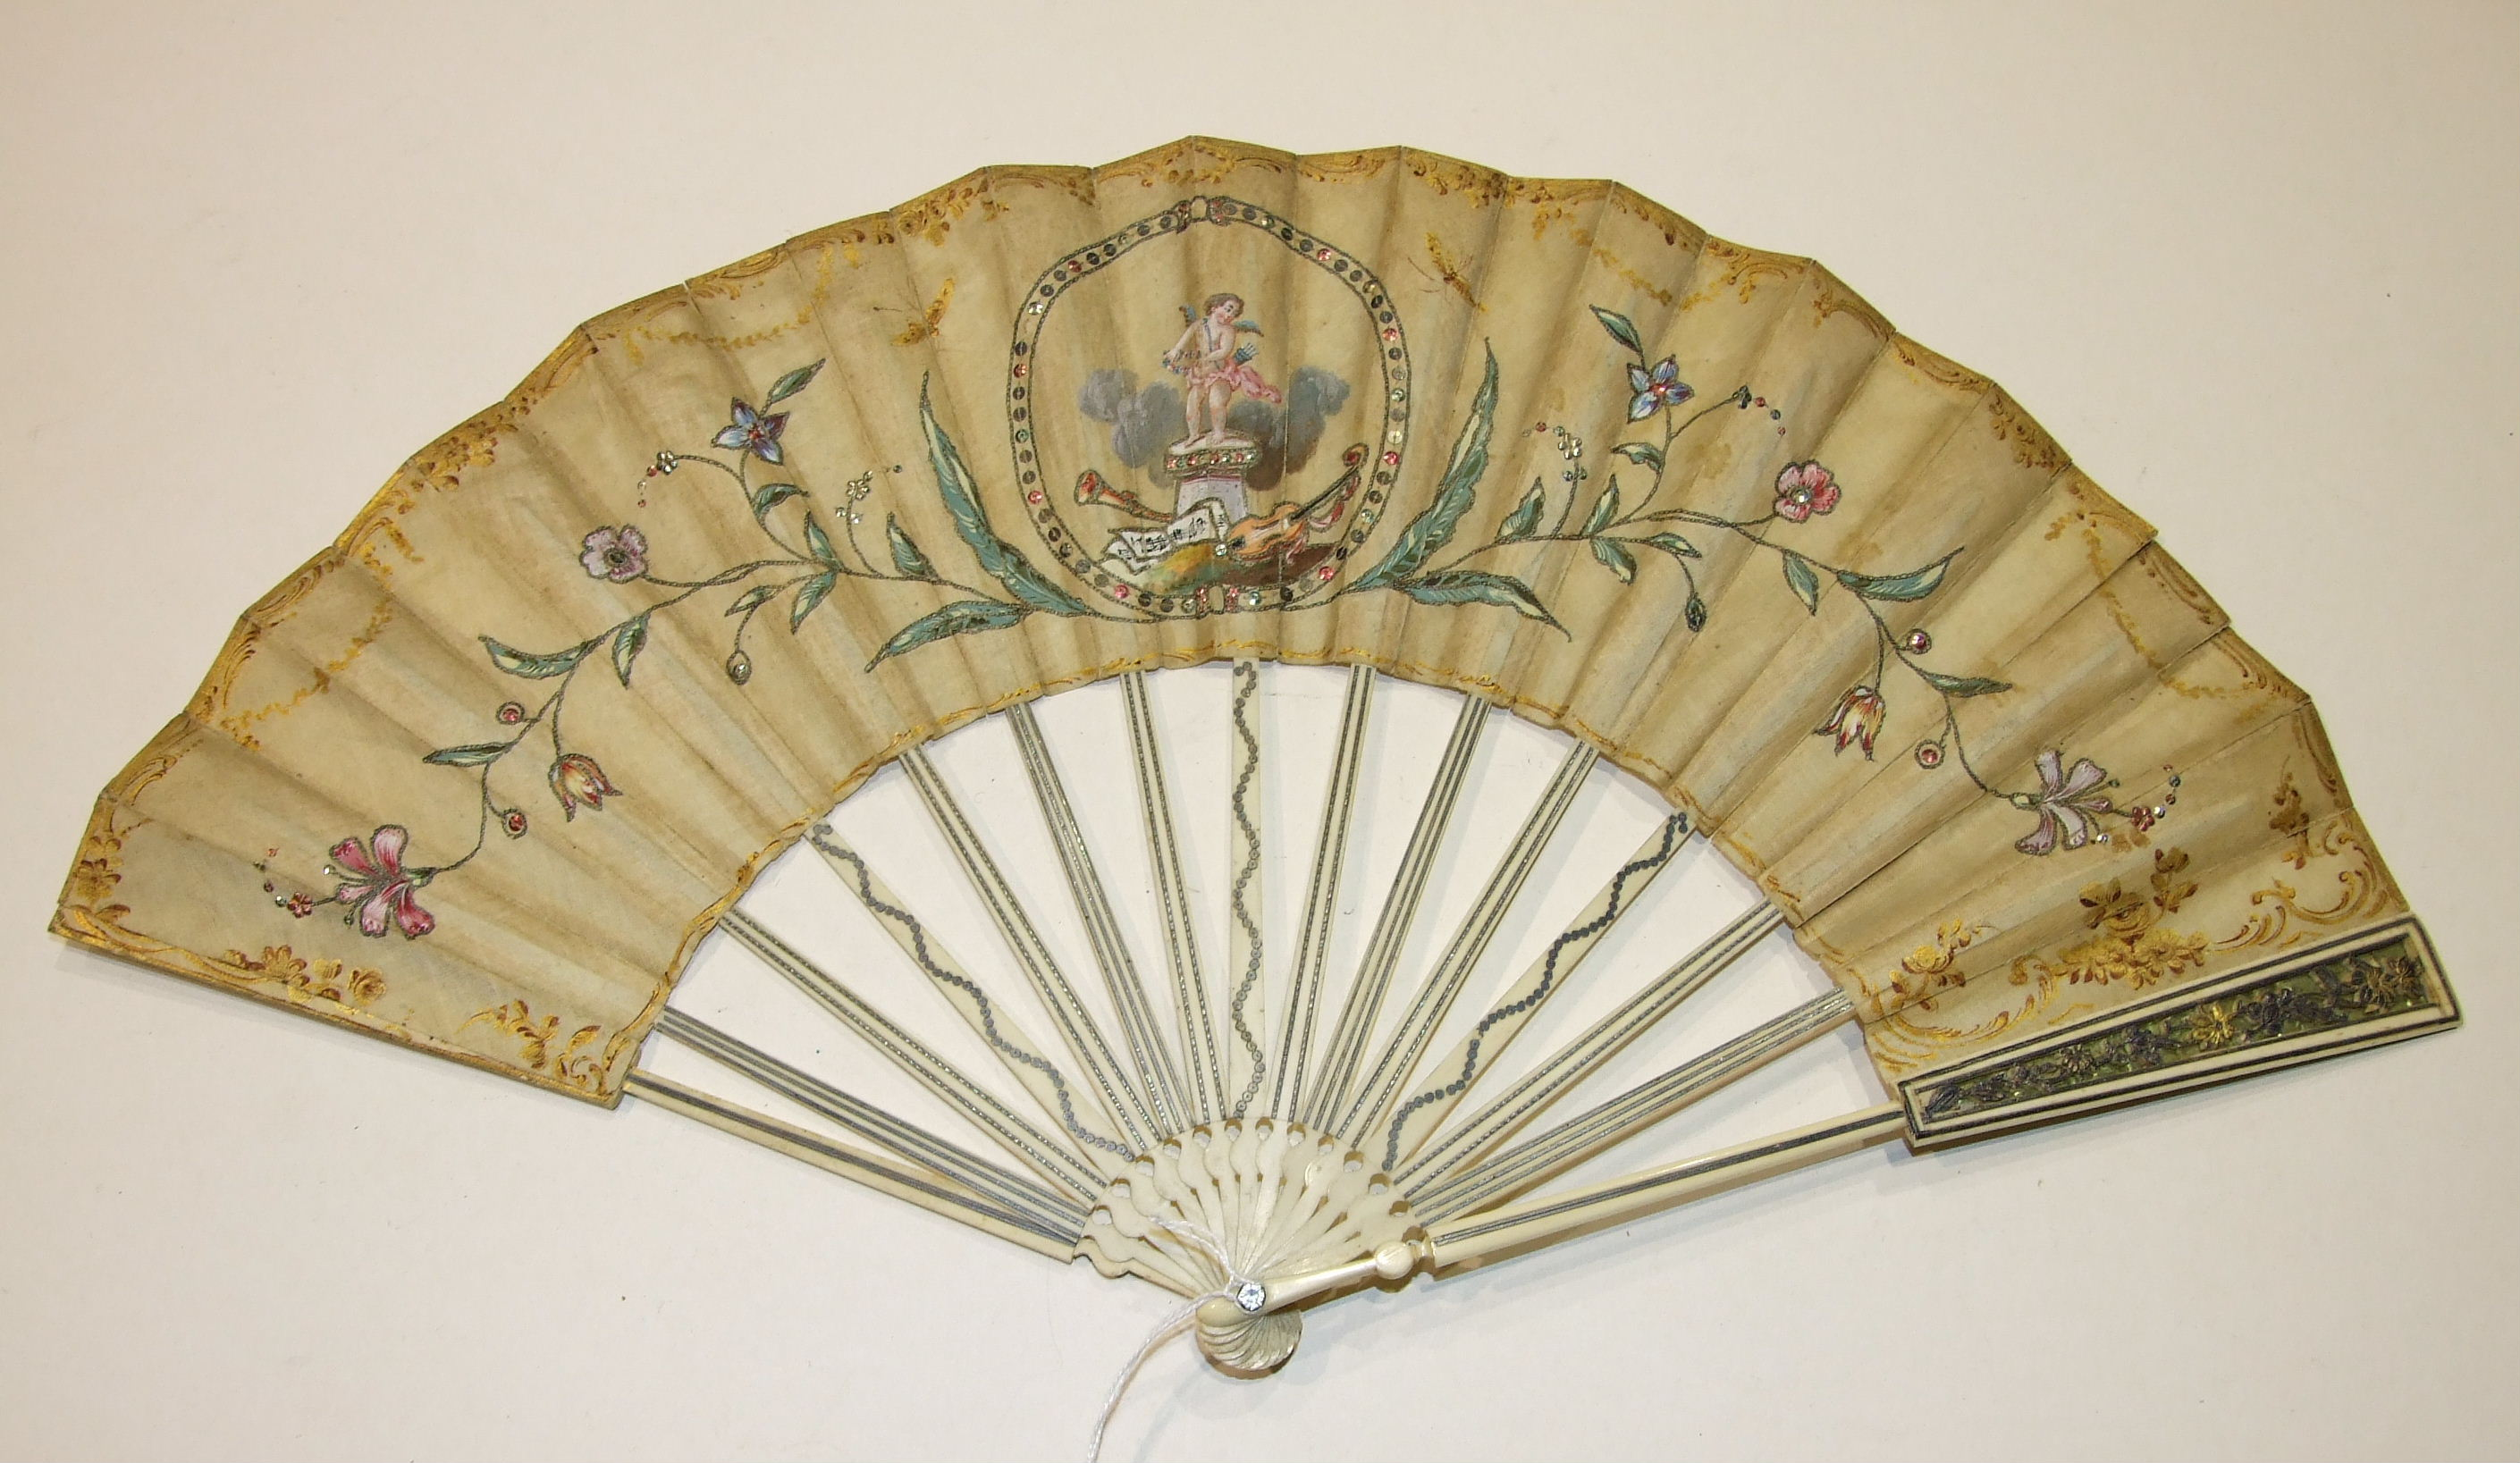 Lot 346 - An 18th century fan, the guards pierced and overlaid with gold and silver, the sticks inlaid with